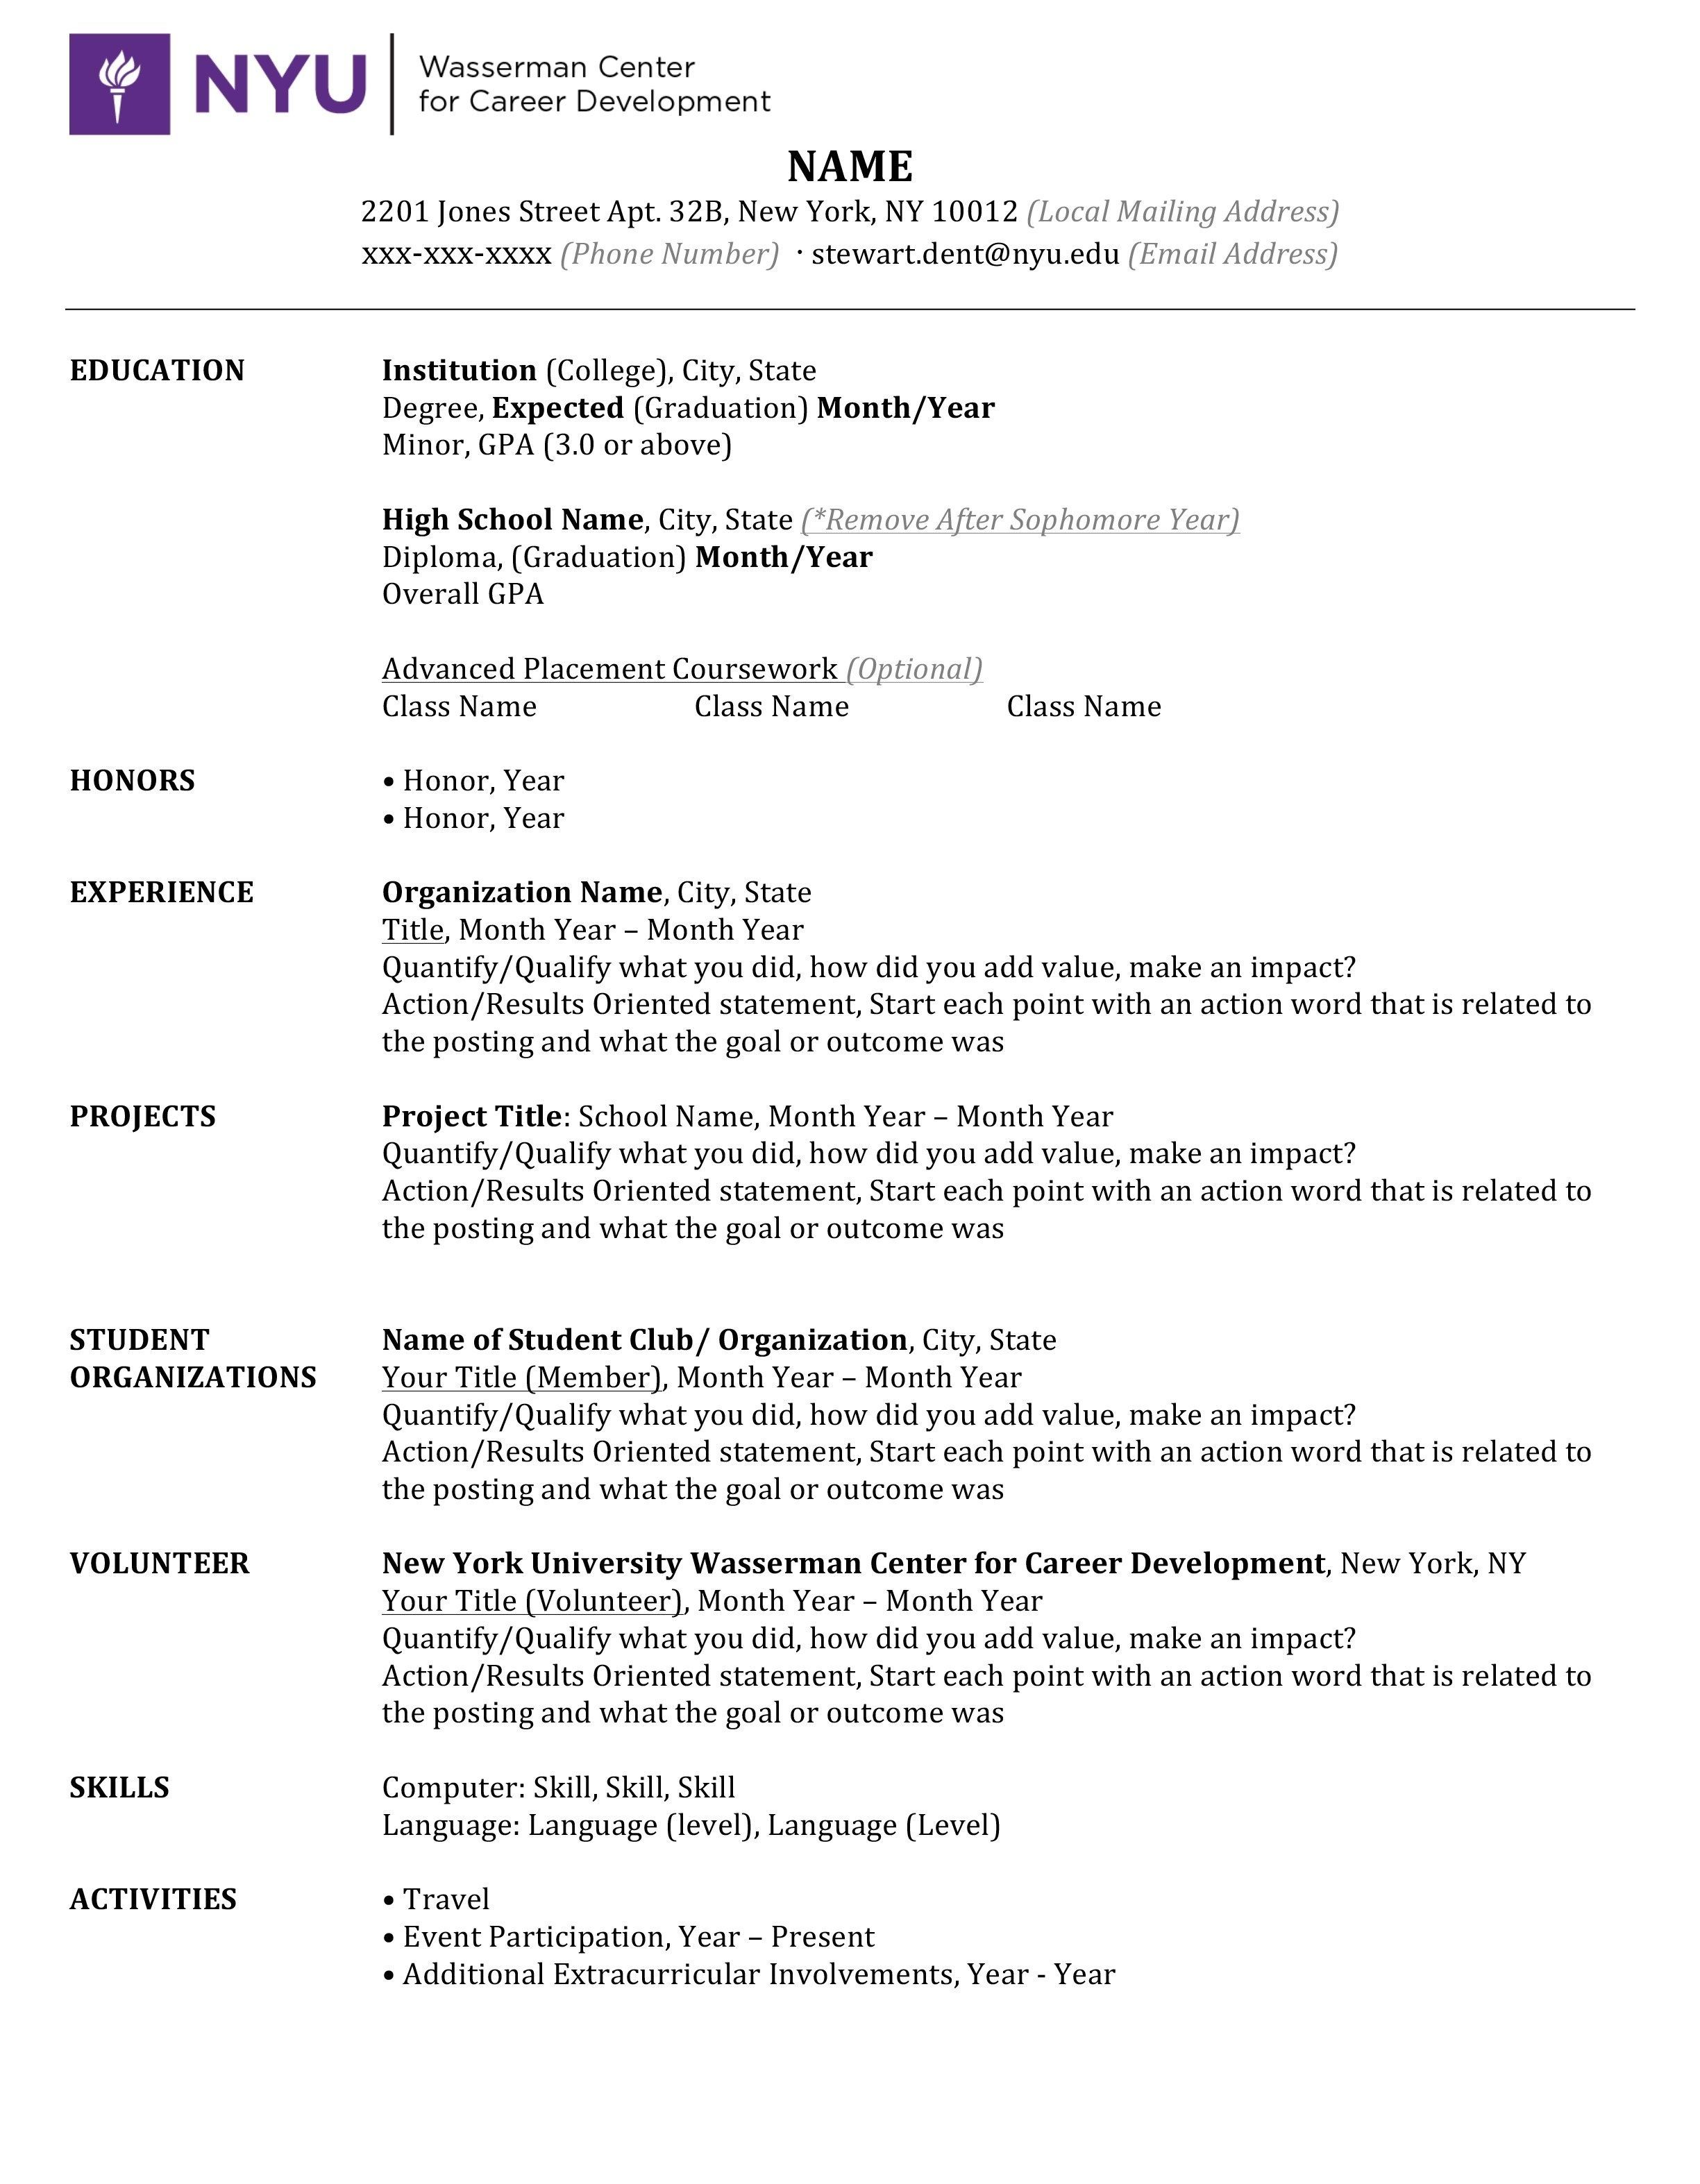 linux admin resume pdf useful materials for system database administrator sample cute - Linux Administrator Sample Resume